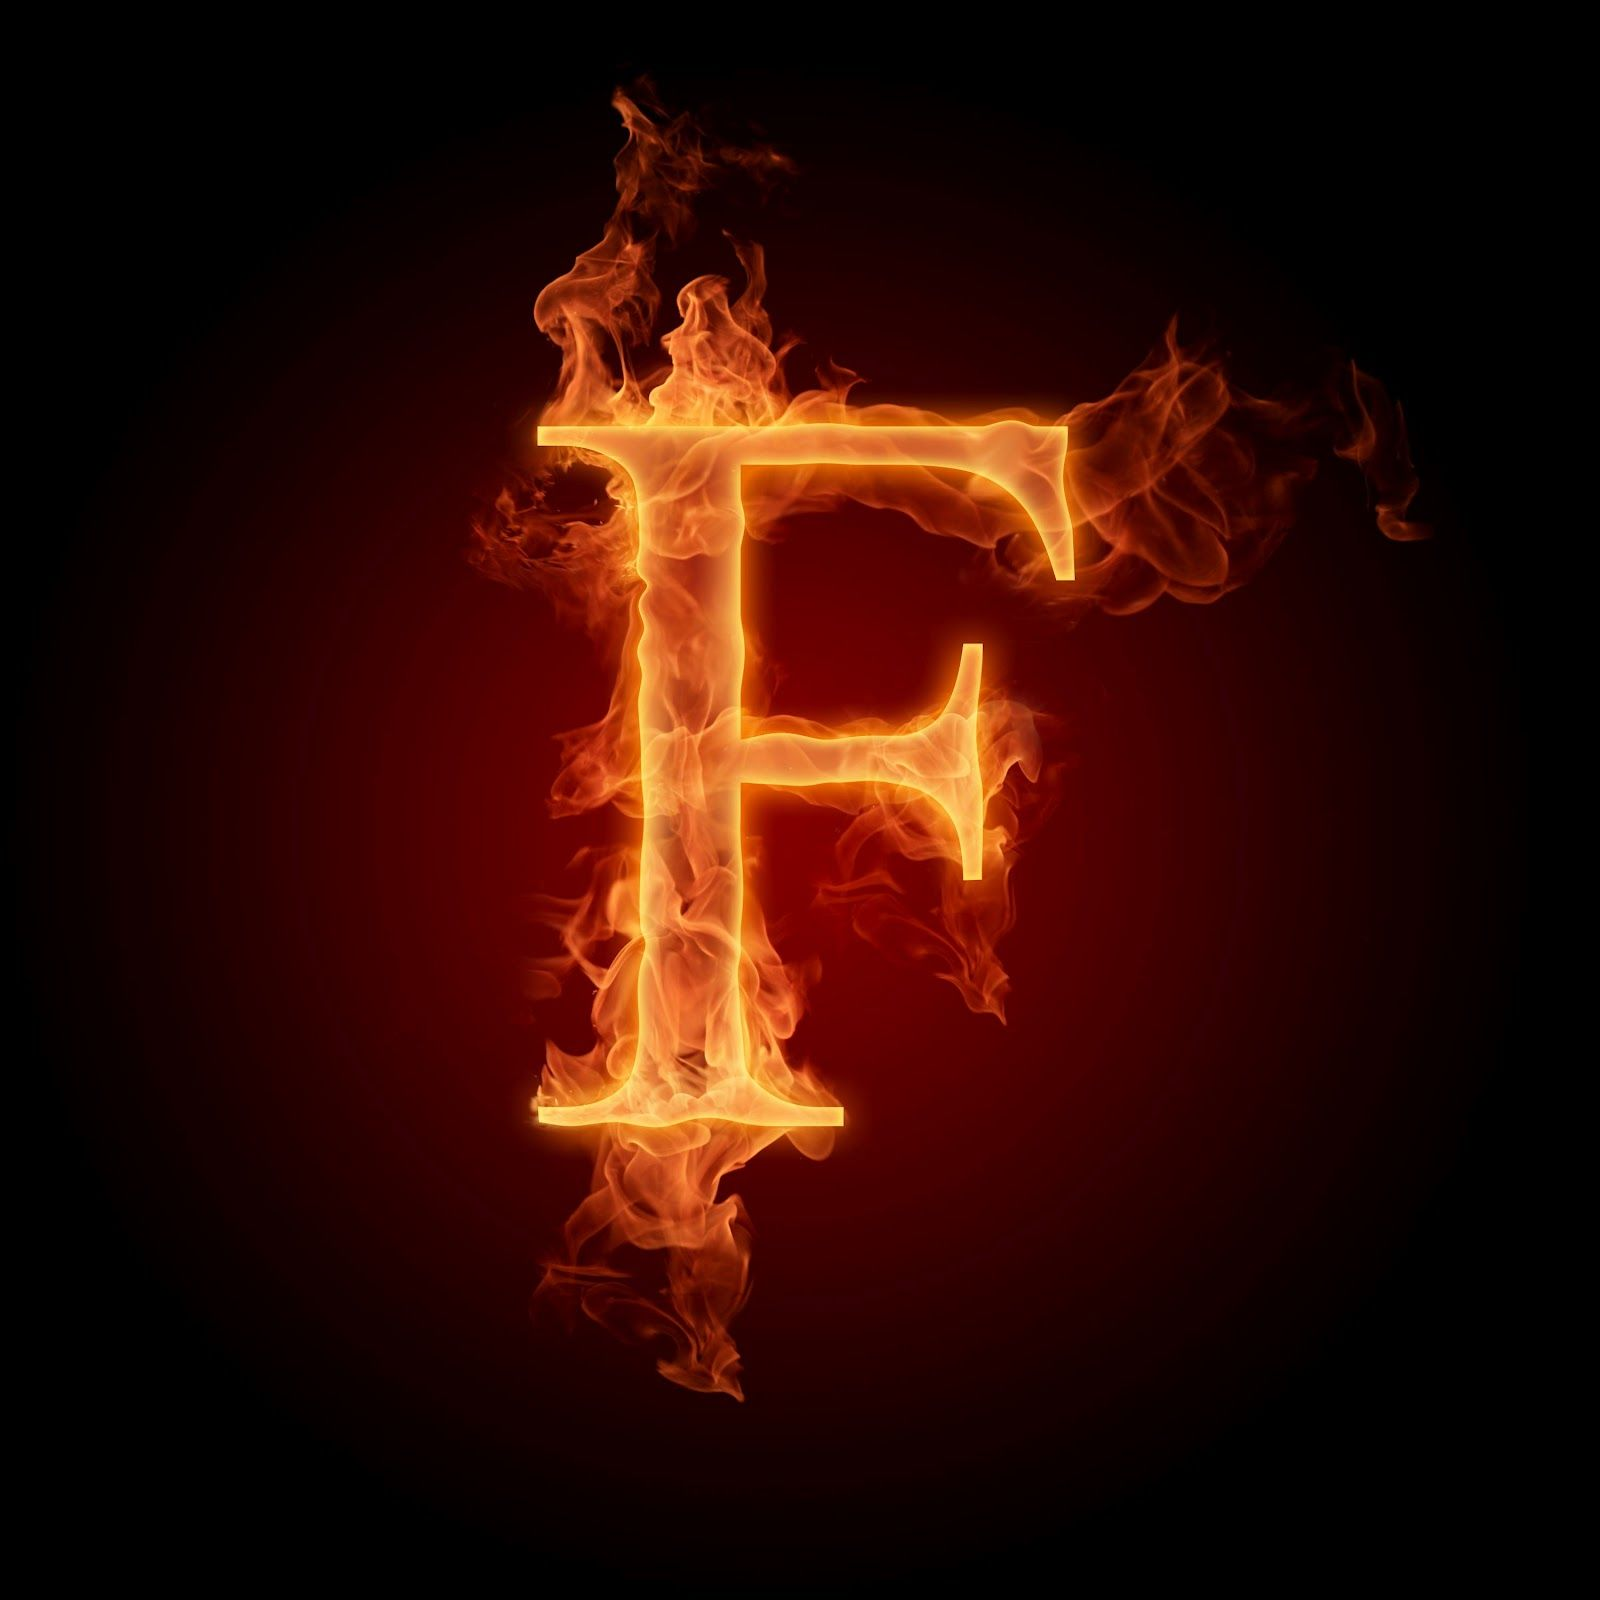 F Alphabet hd wallpaper image   Android   Pinterest   Hd wallpaper     F Alphabet hd wallpaper image